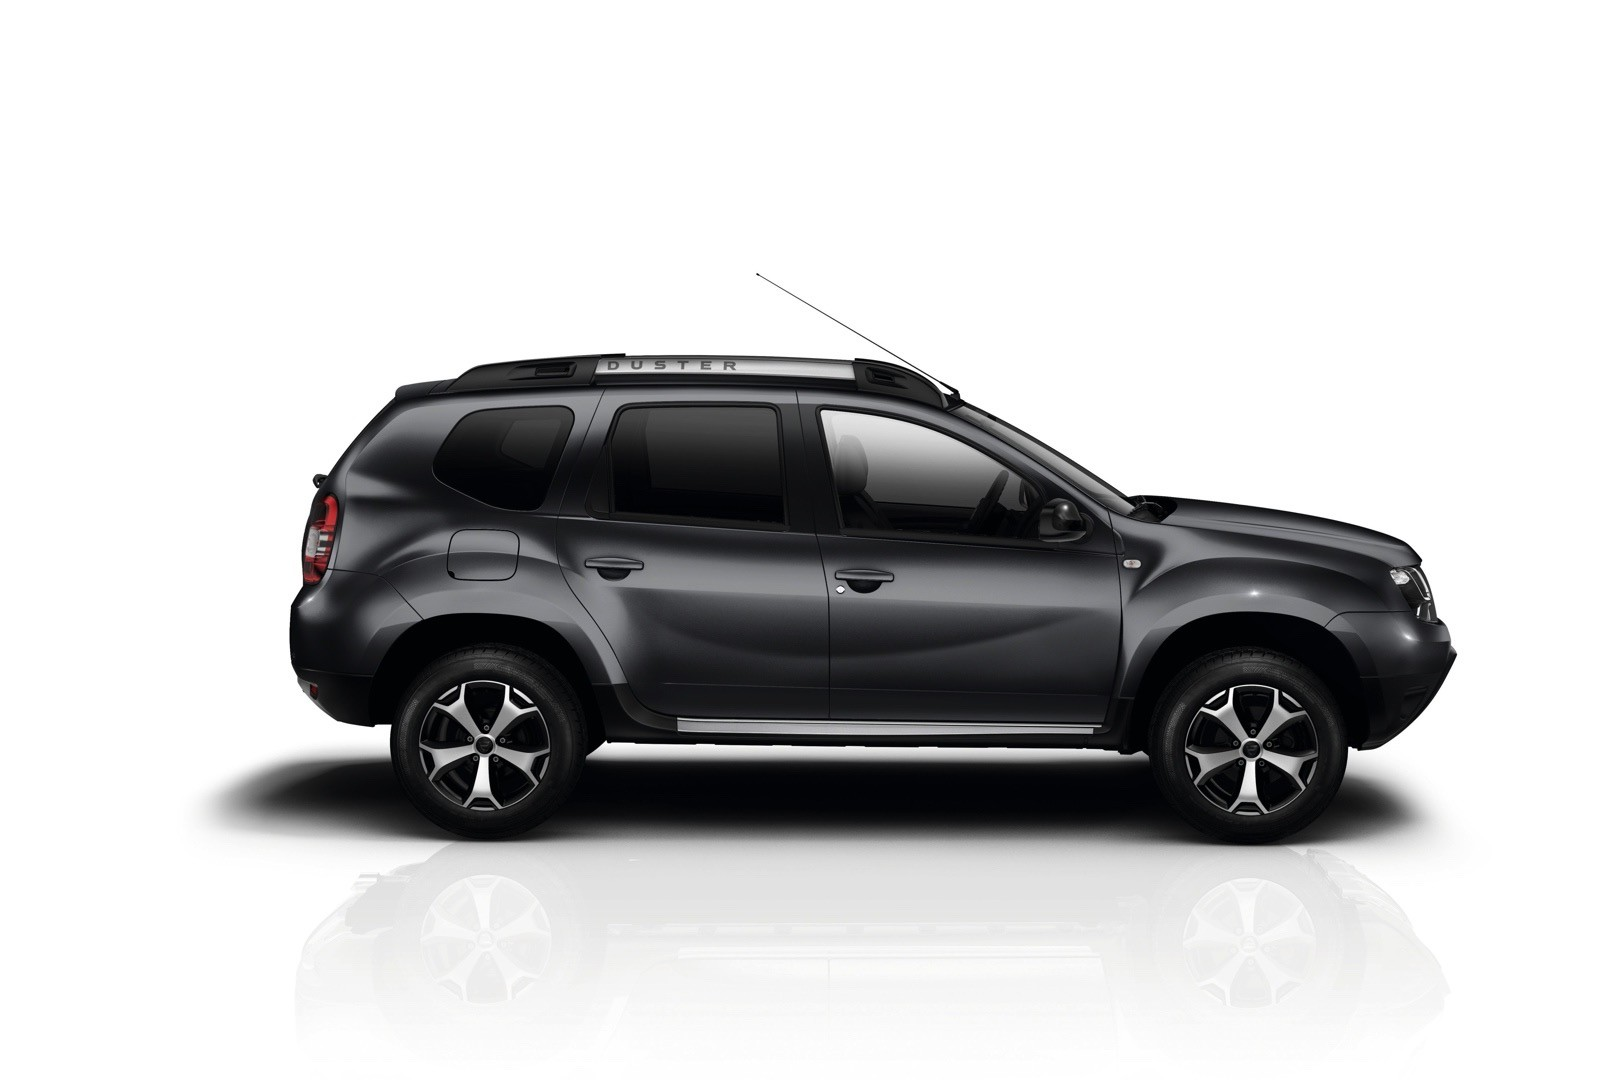 dacia launches explorer special edition in france. Black Bedroom Furniture Sets. Home Design Ideas